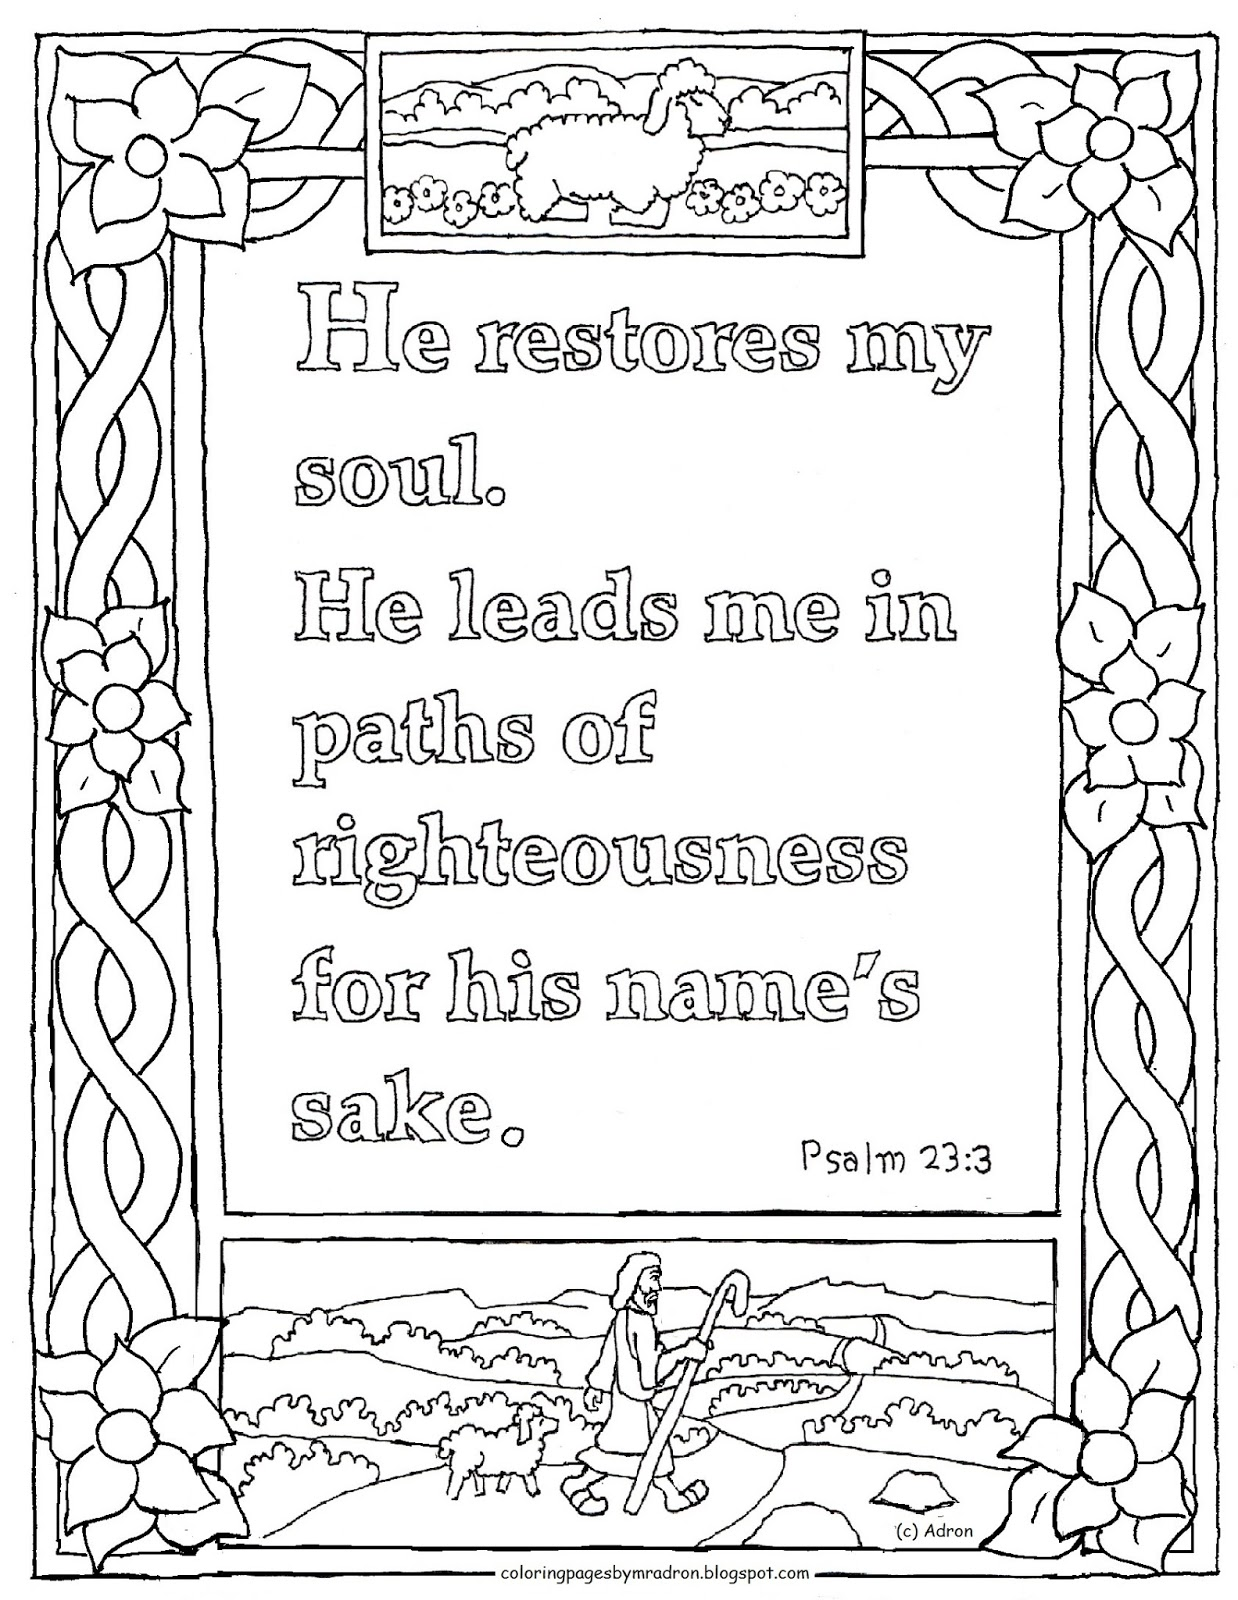 psalms 23 printable coloring pages - photo#6